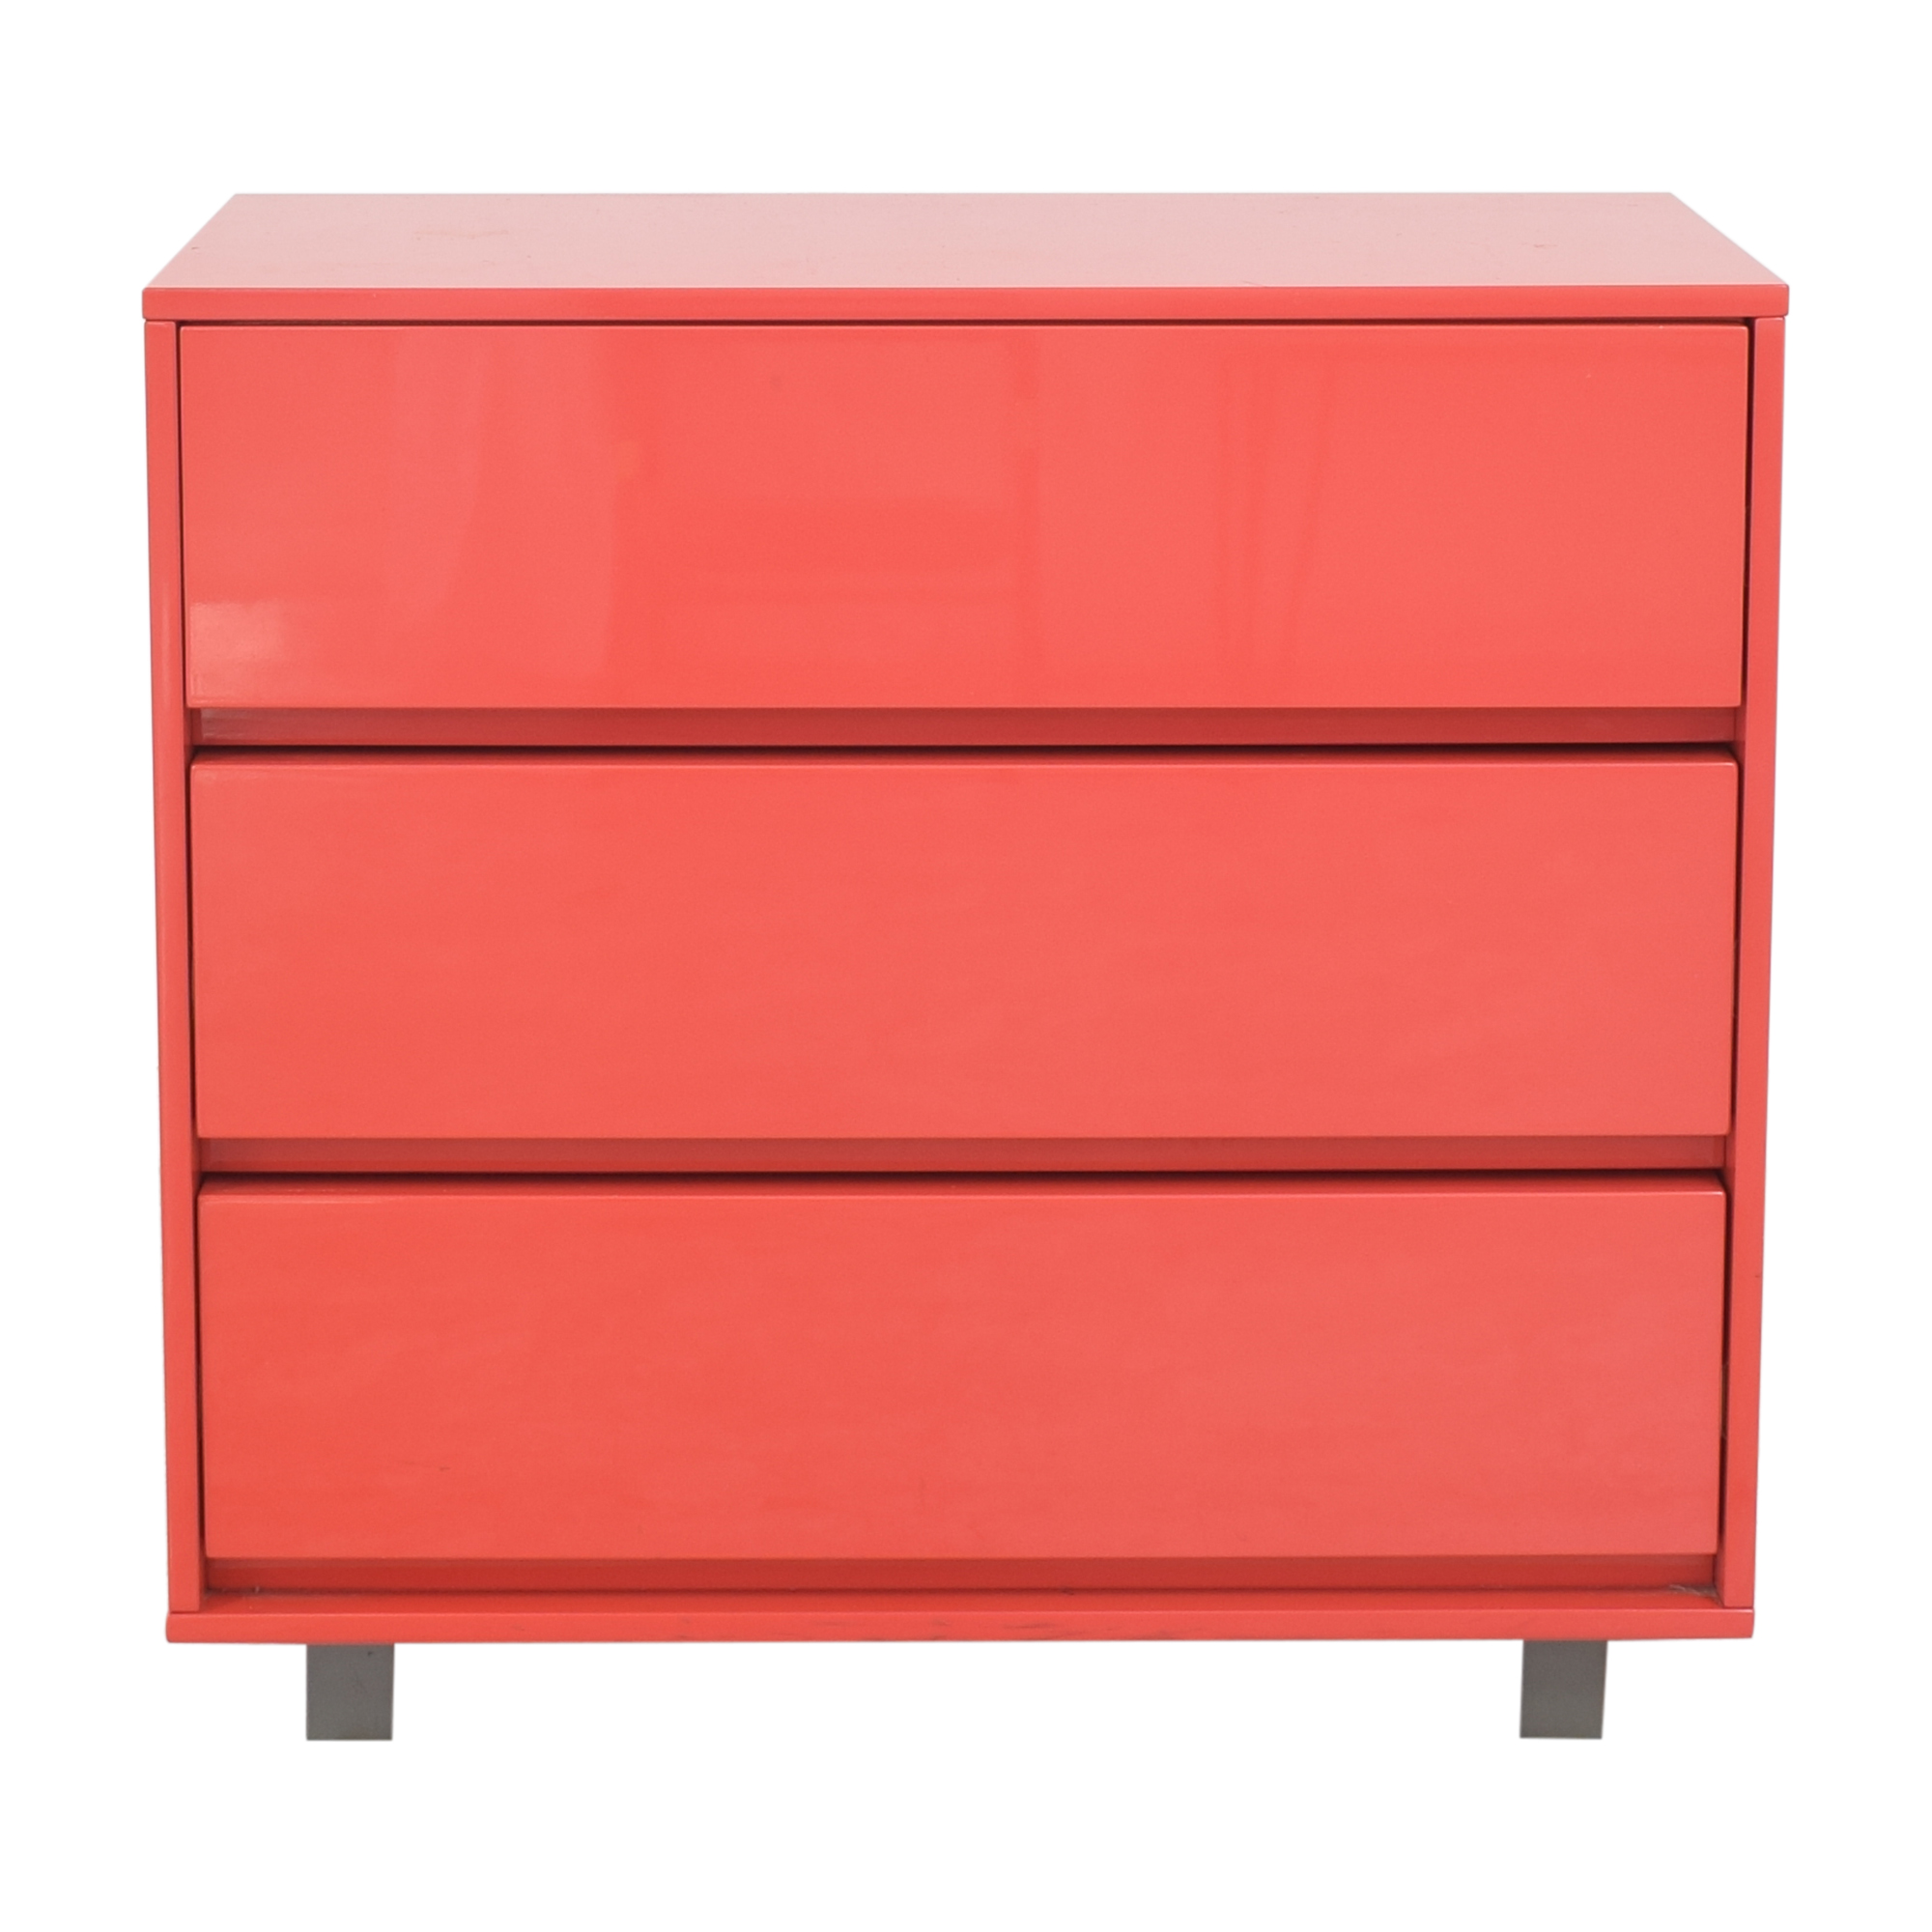 CB2 CB2 3-Drawer Dresser